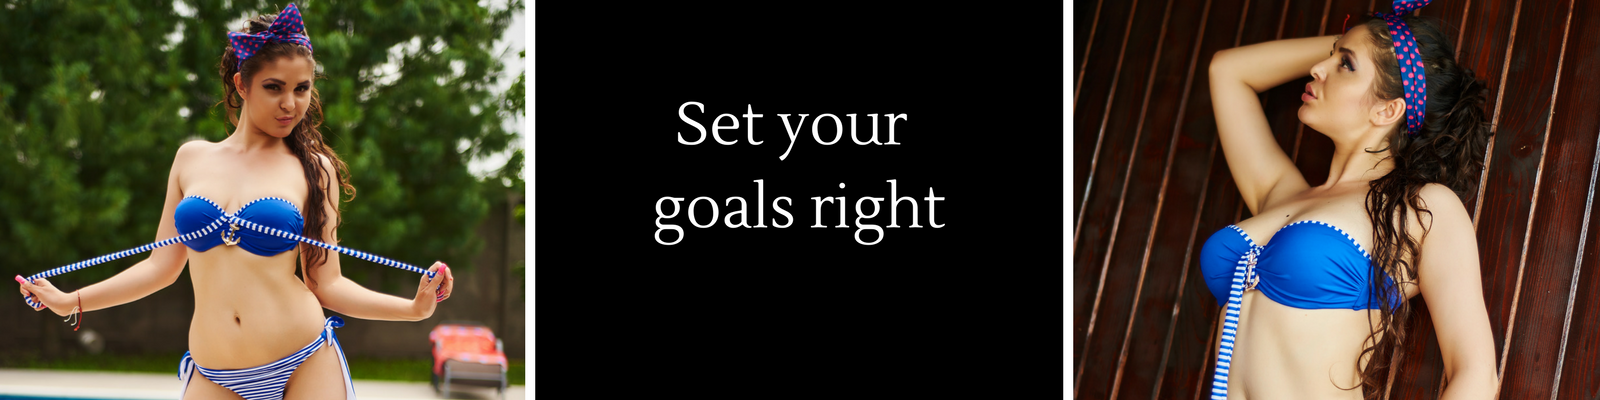 Set your goals right